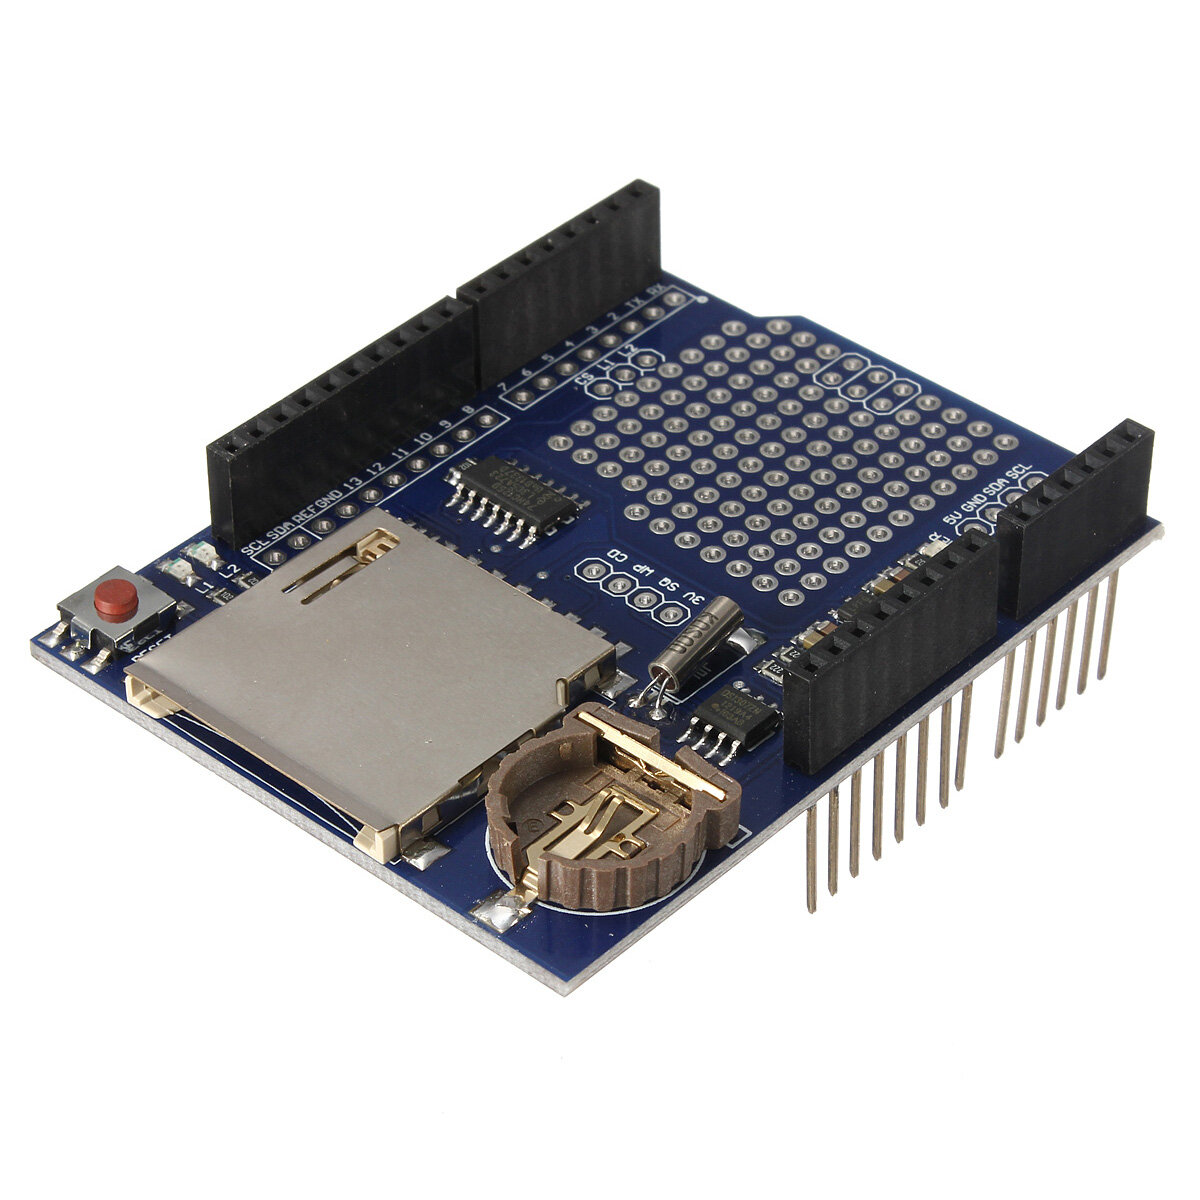 Logging Recorder Datenlogger Modul Shield V1.0 Arduino kompatibel